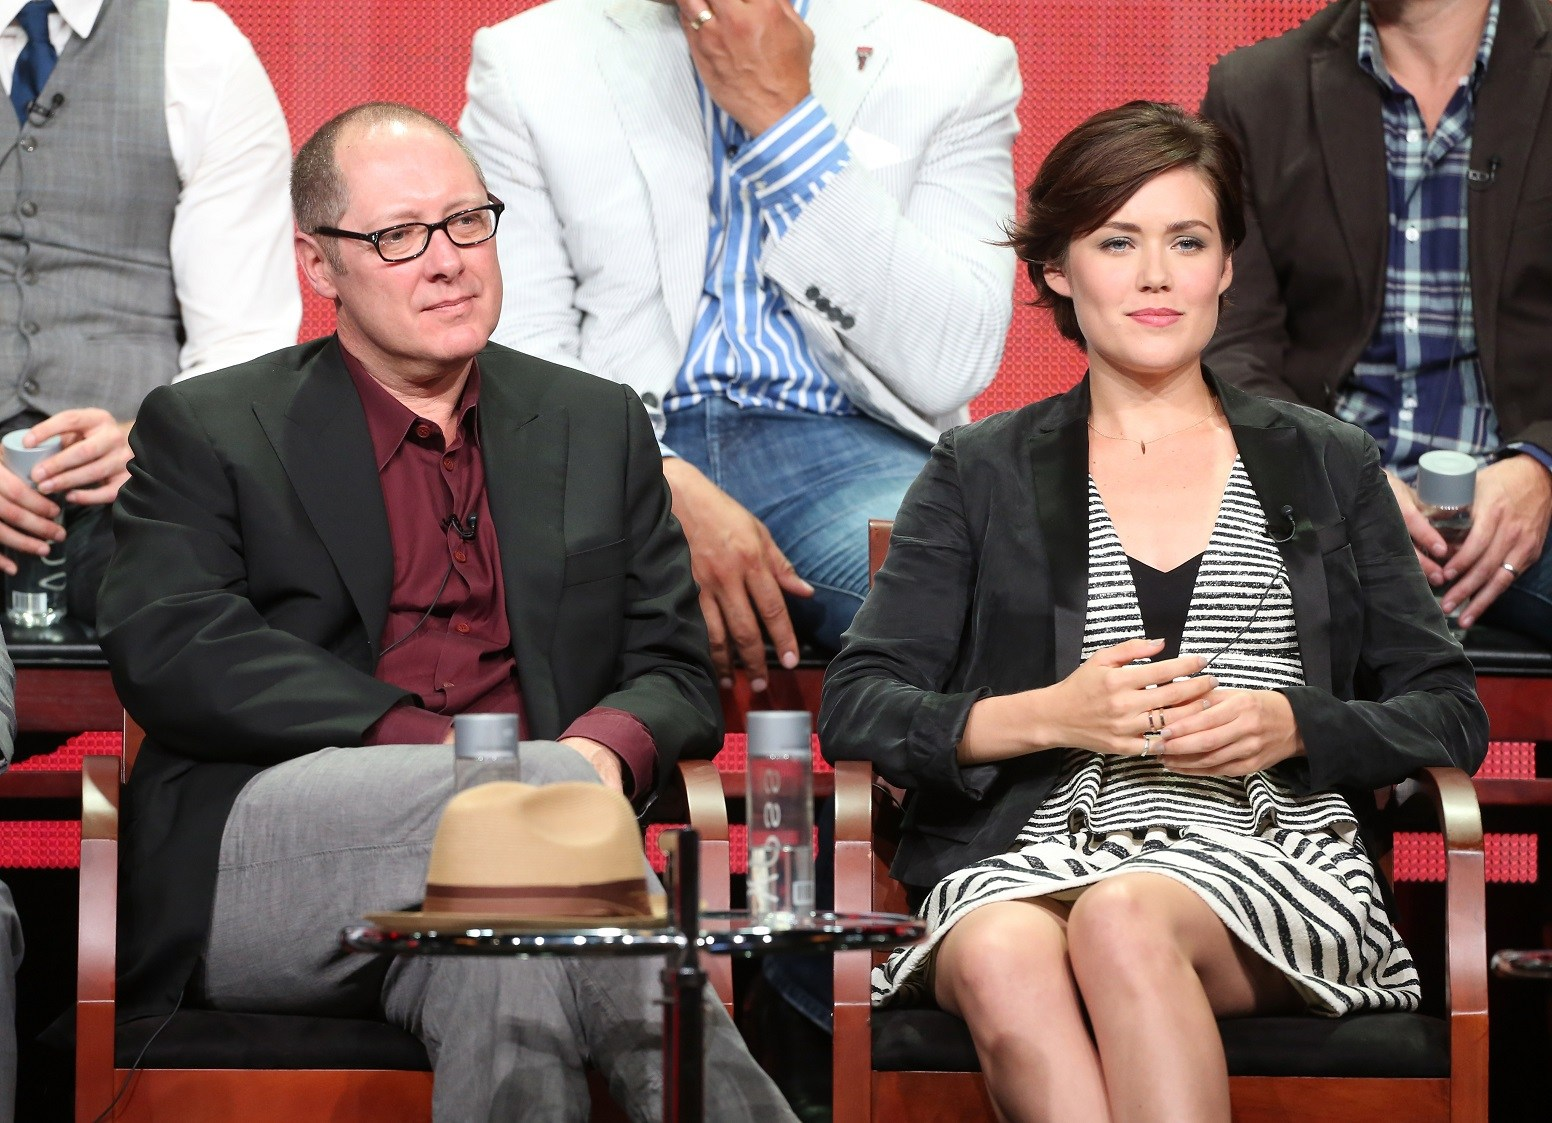 James Spader and Megan Boone from NBC's The Blacklist